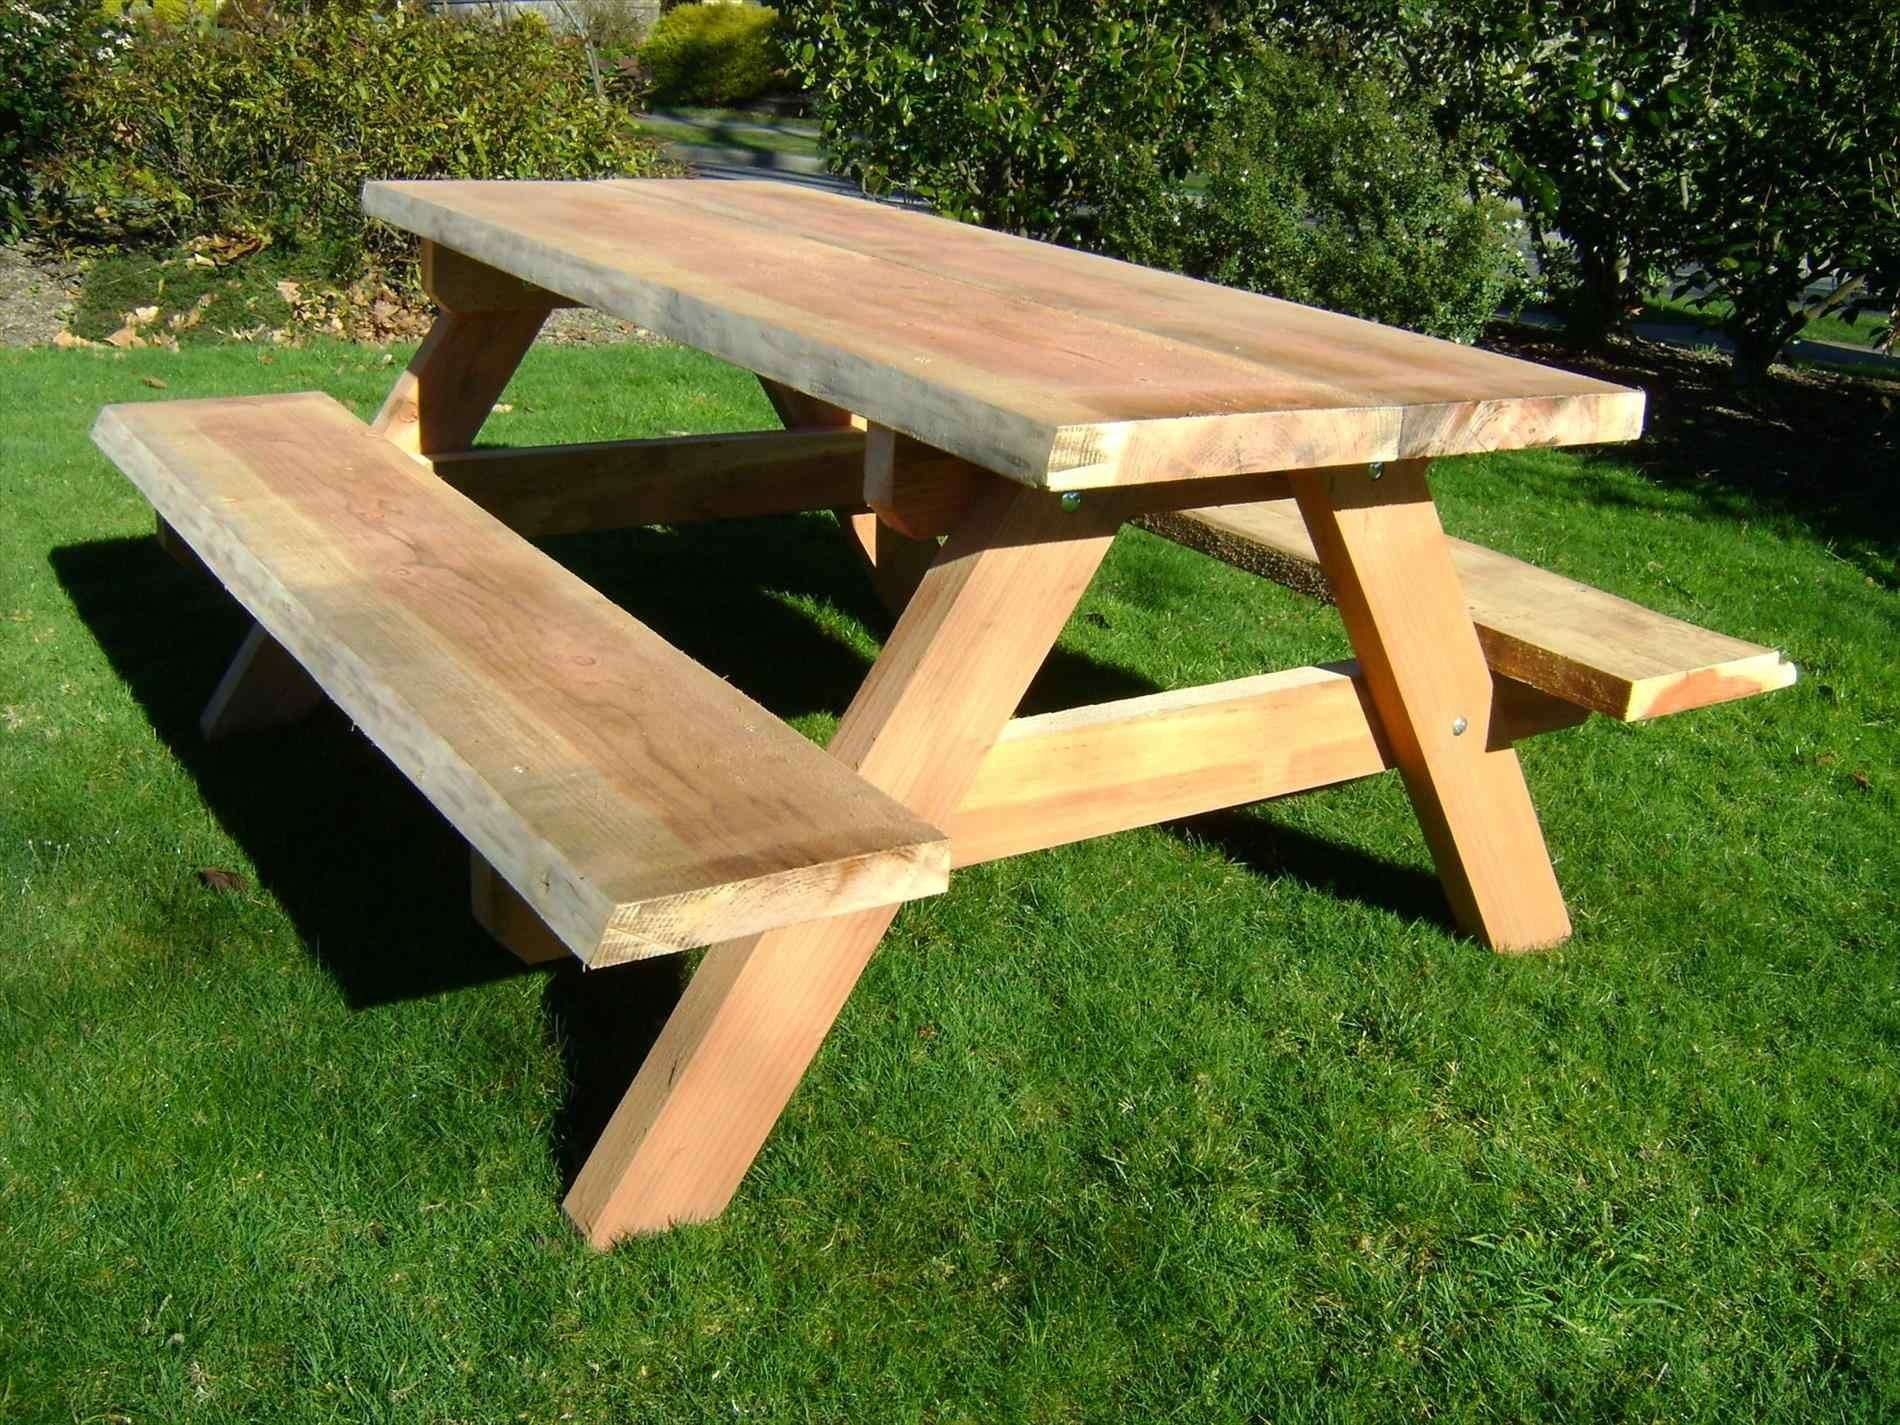 Simple Outdoor Wood Furniture Plans Datenlabor Info